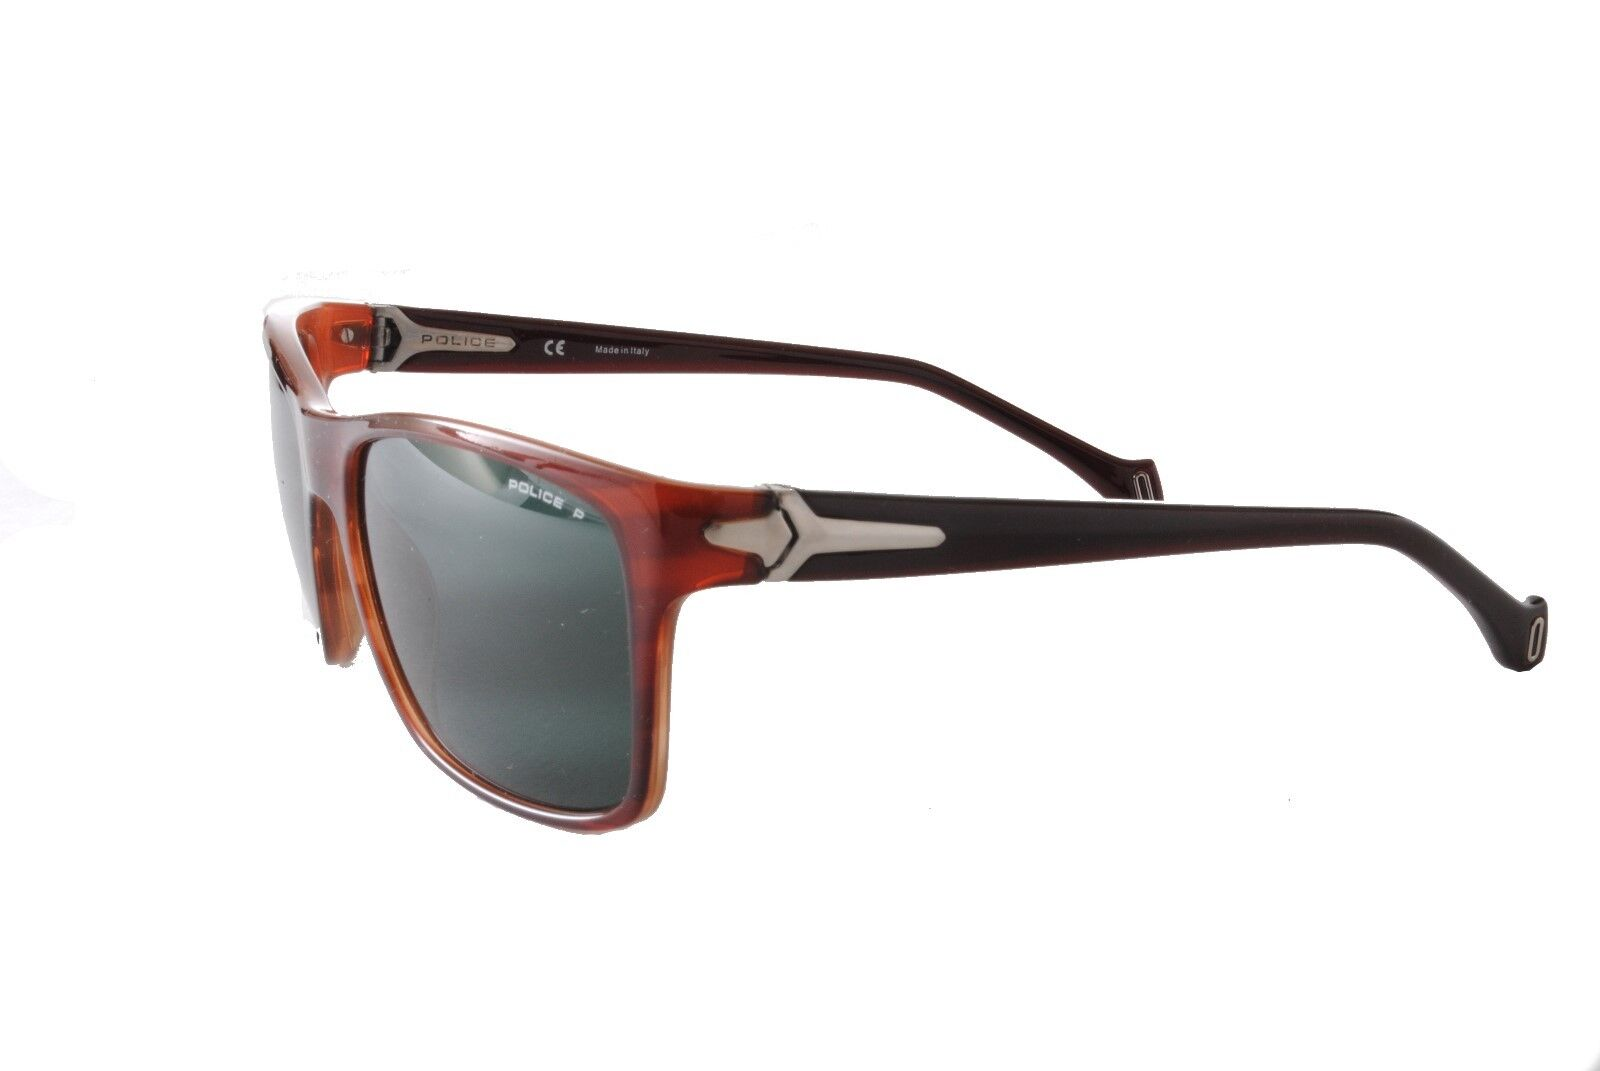 Cycling Sport Sunglasses Black Red Grey Polarised Case Included SP05 Col 2